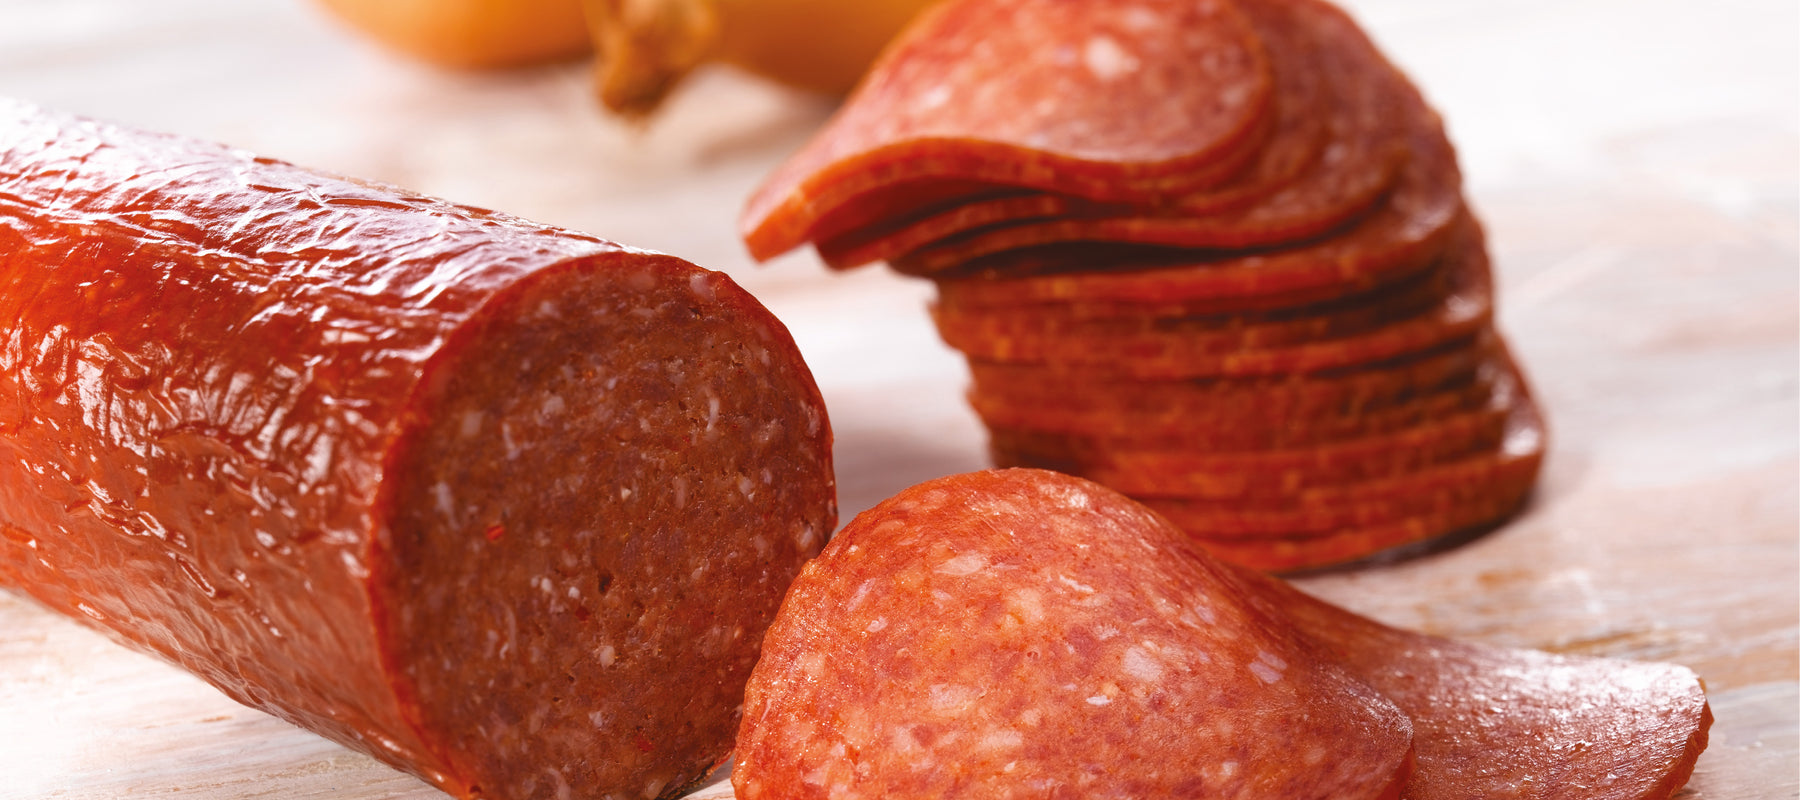 salami and pepperoni sausage casing